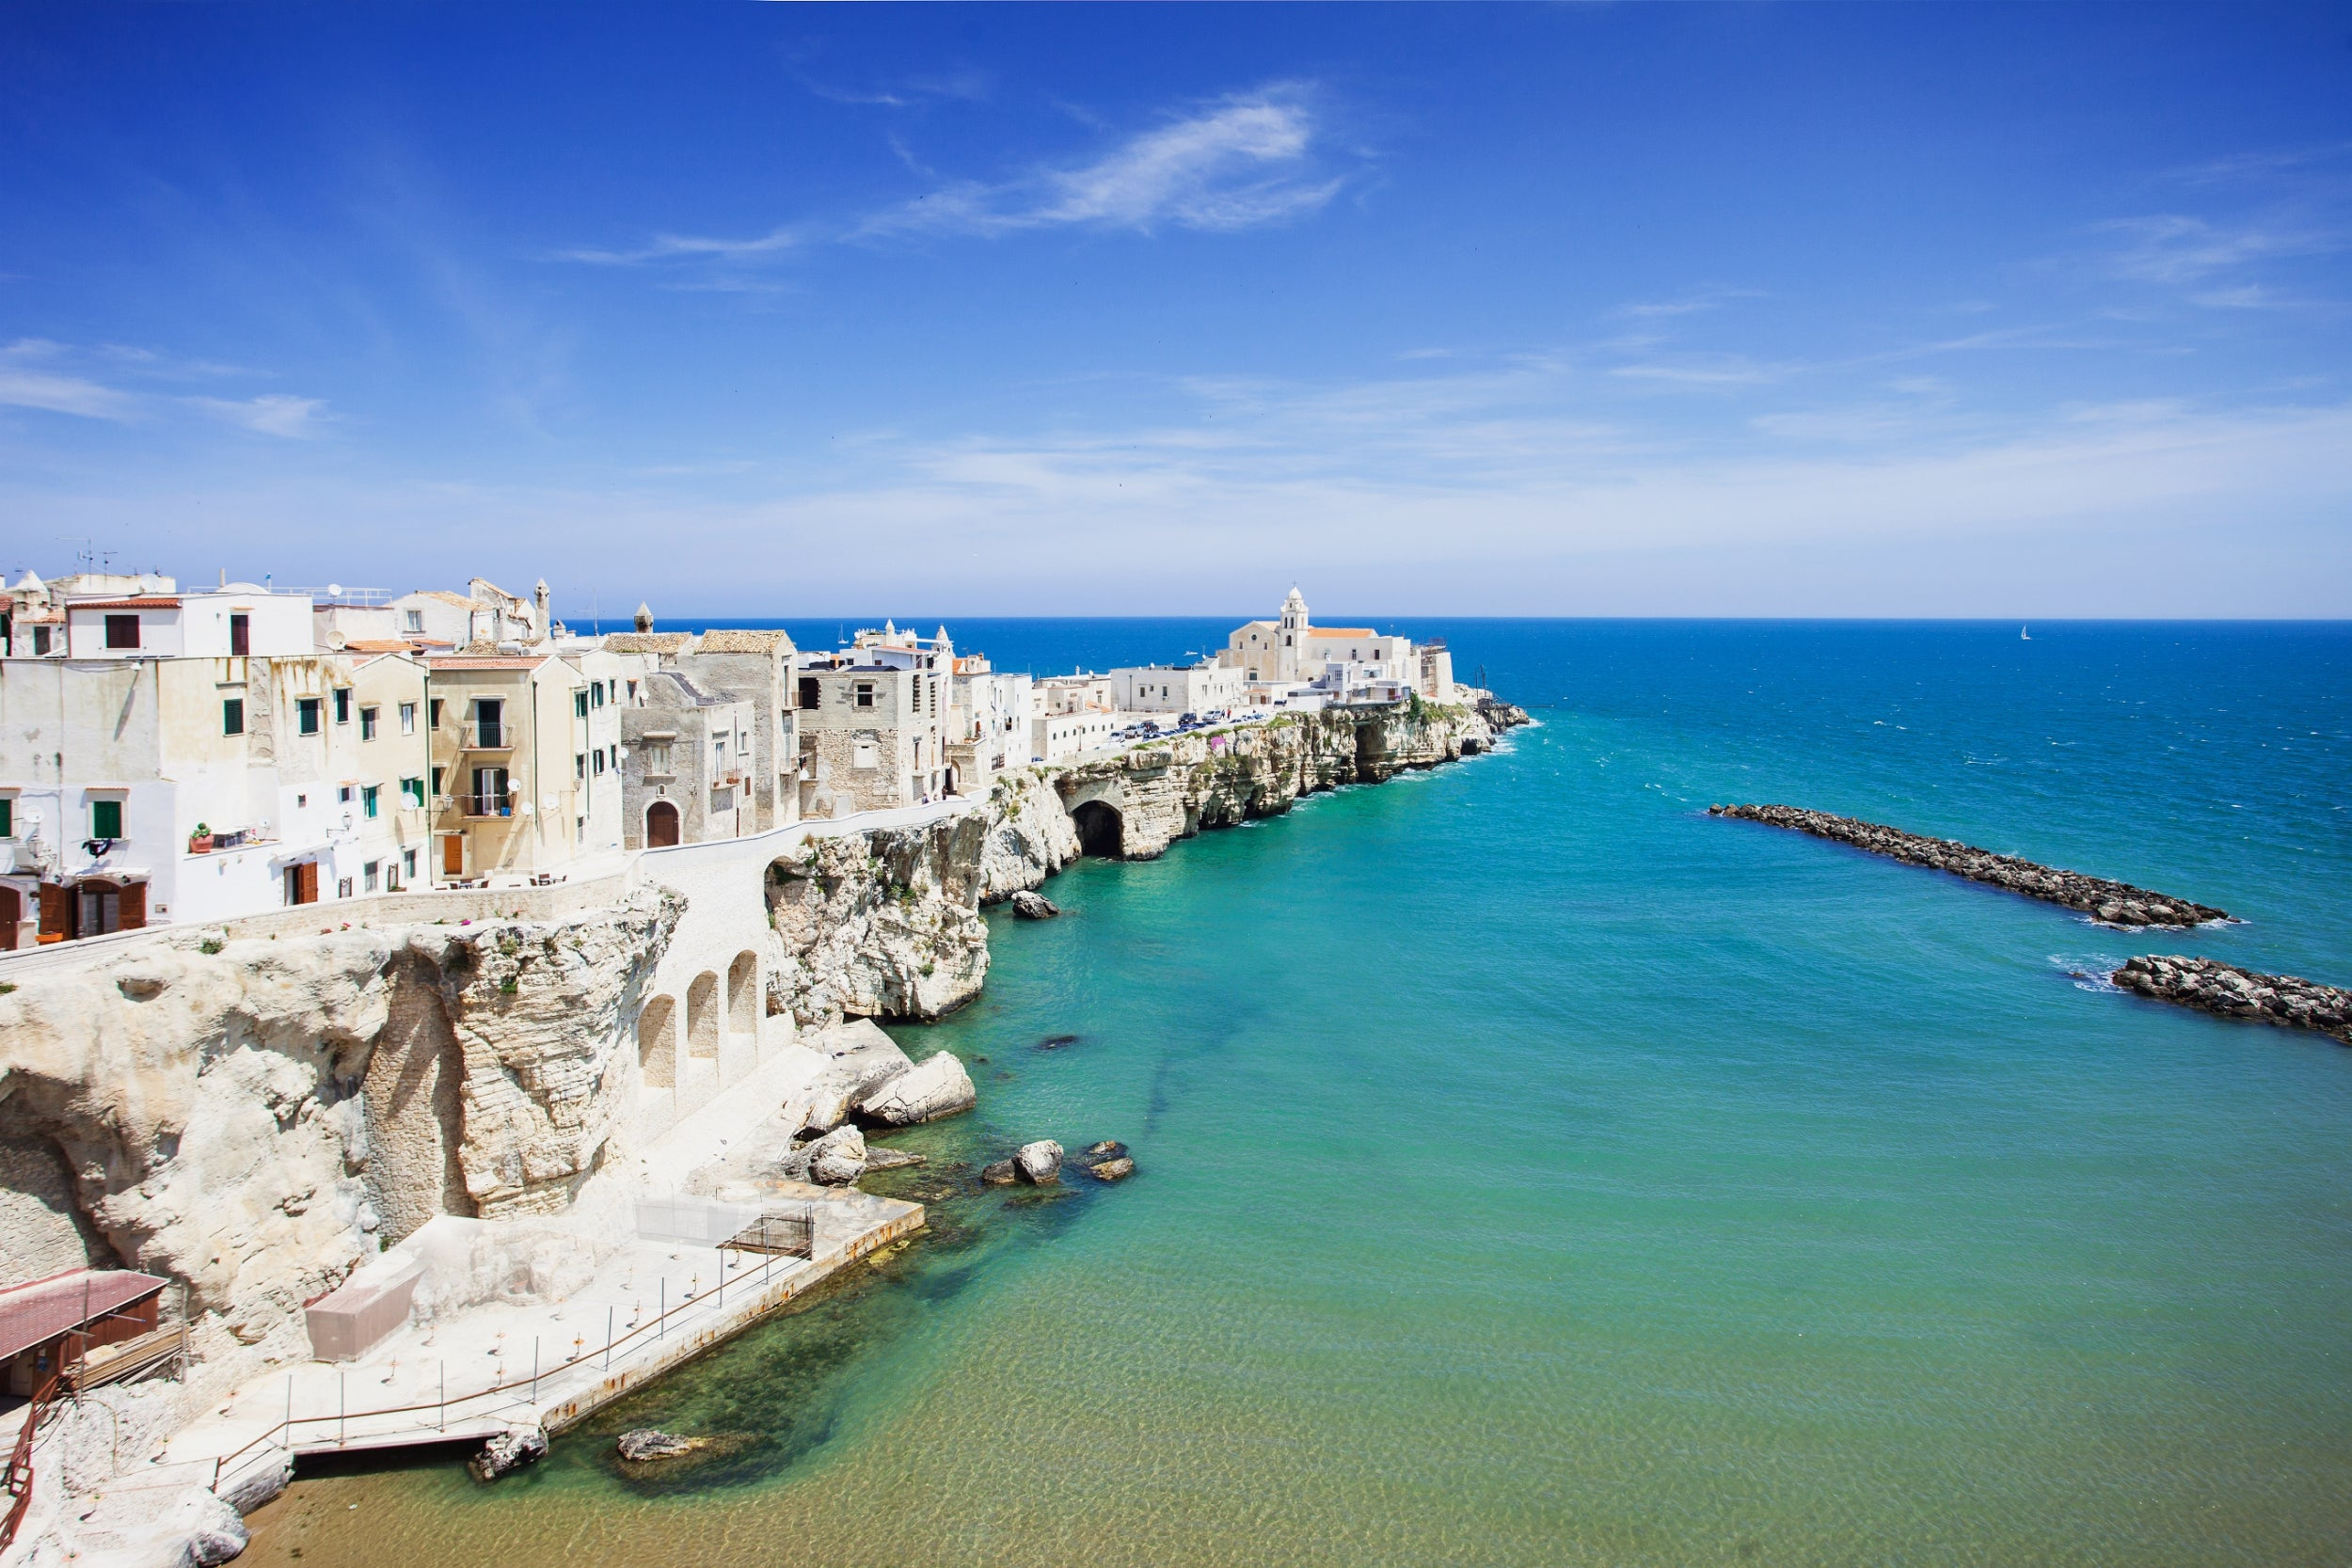 Puglia, Italy: Baroque architecture and Adriatic beaches in Italy's heel